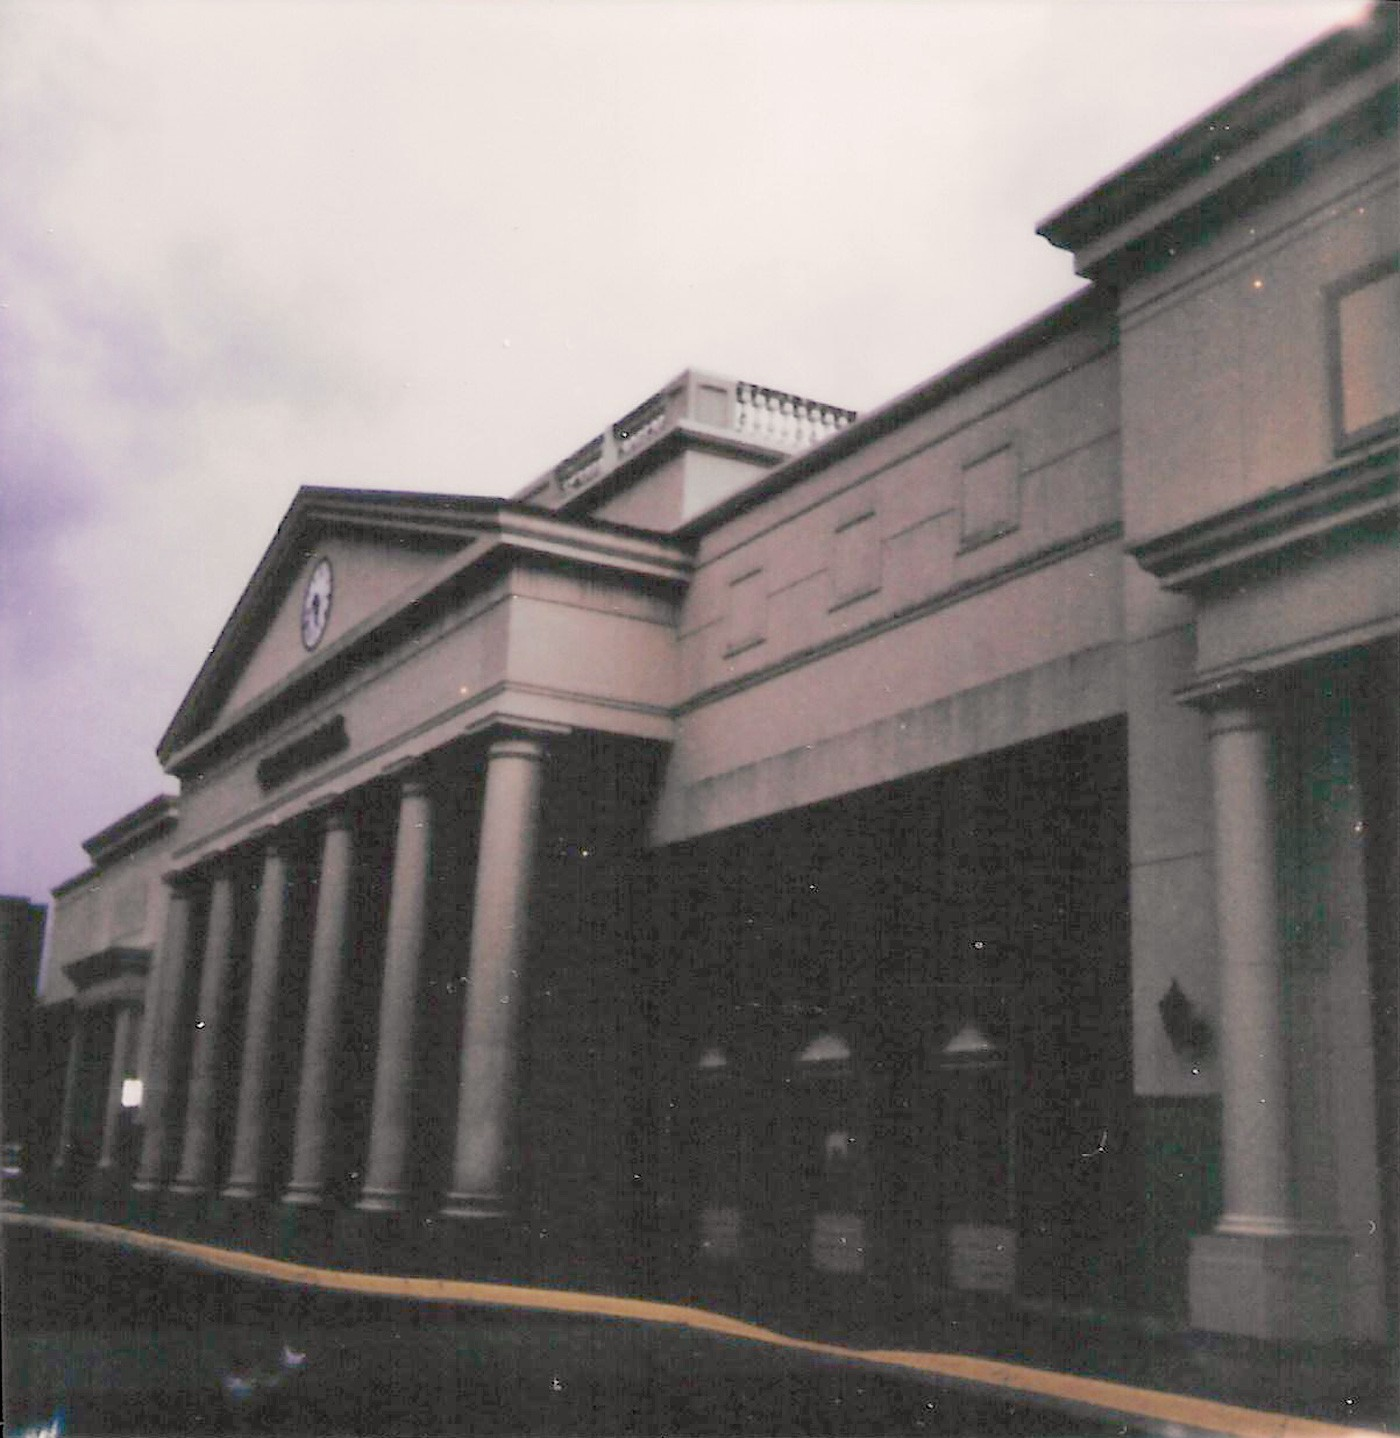 a Polaroid picture of a movie theater